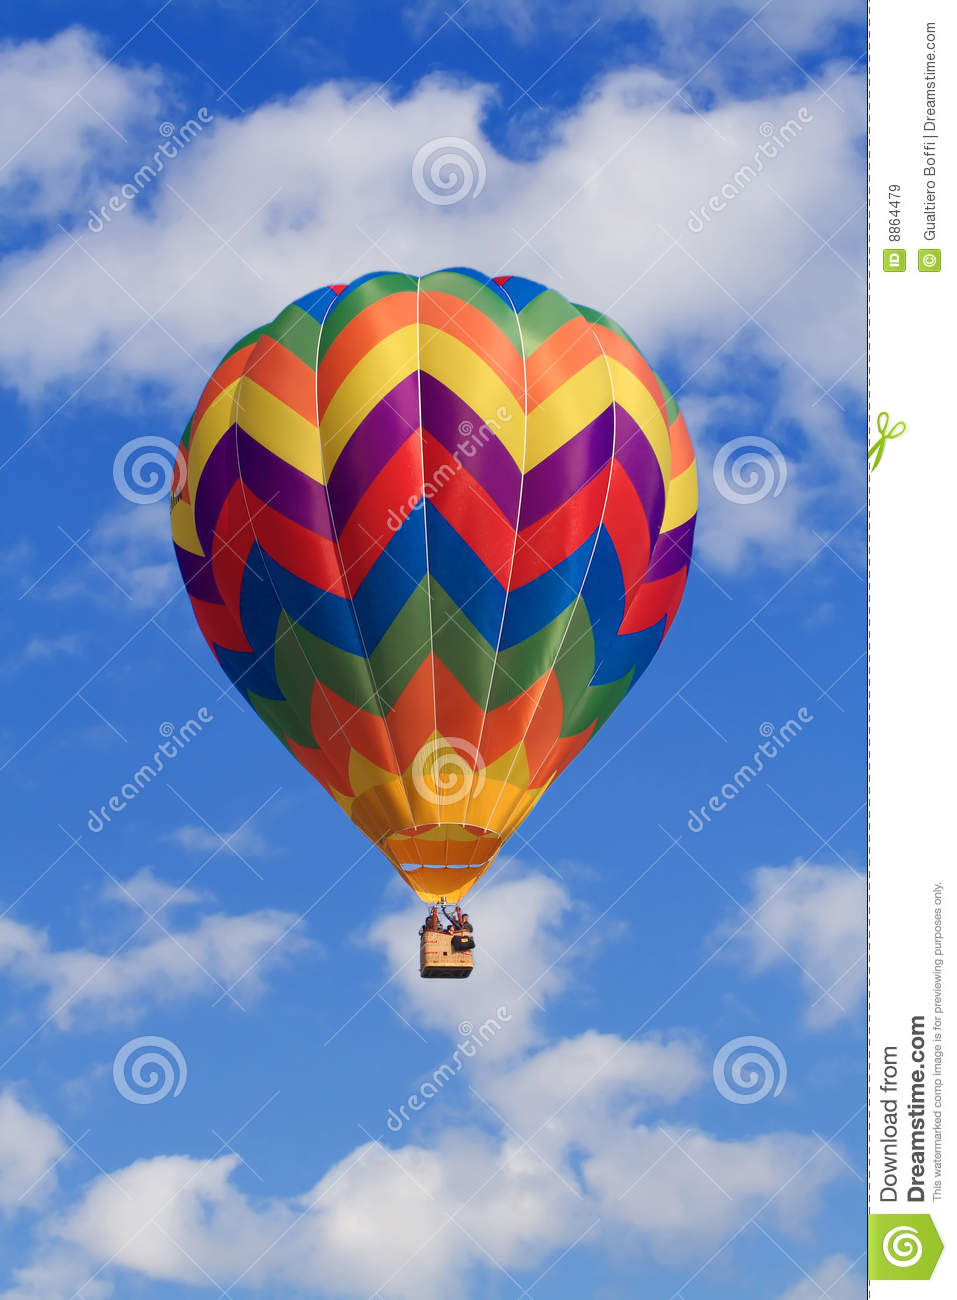 Clouds and hot air balloon royalty free stock images for Silver cloud balloons